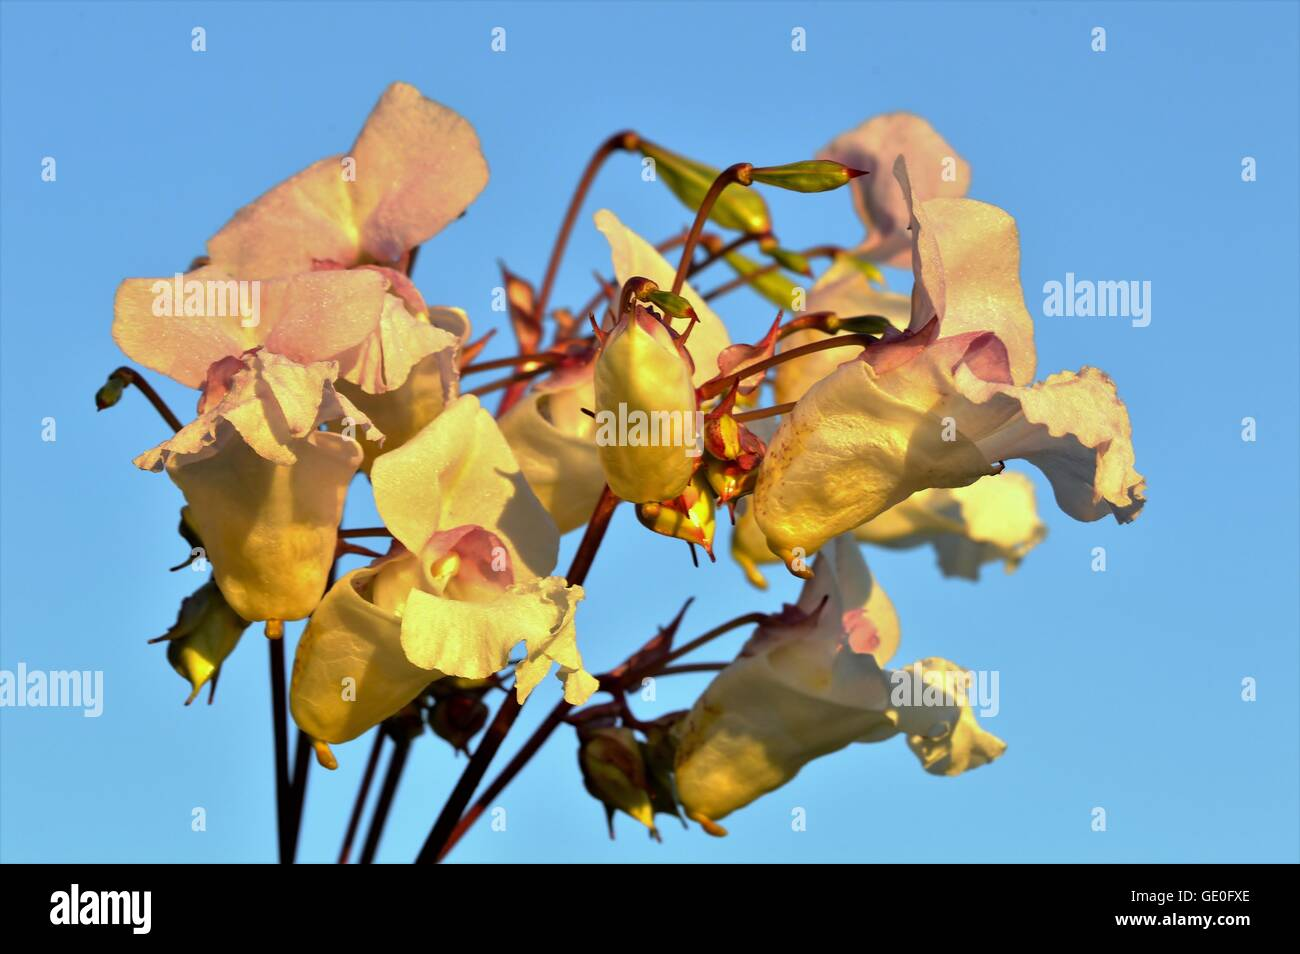 Himalayan Balsam flowers against a blue sky. Stock Photo